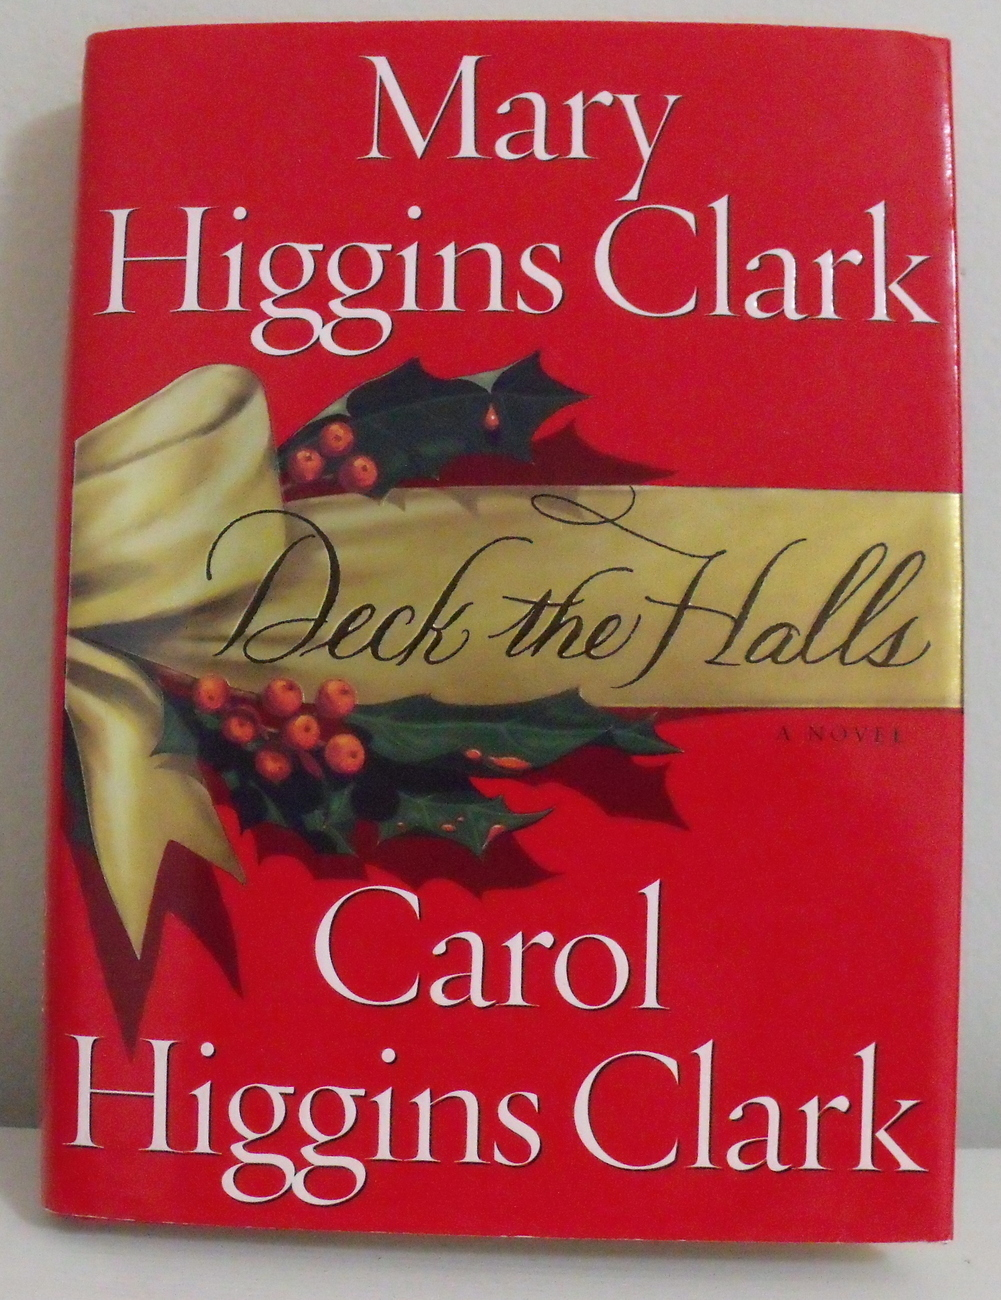 Primary image for Book Deck the Halls Mary and Carol Higgins Clark